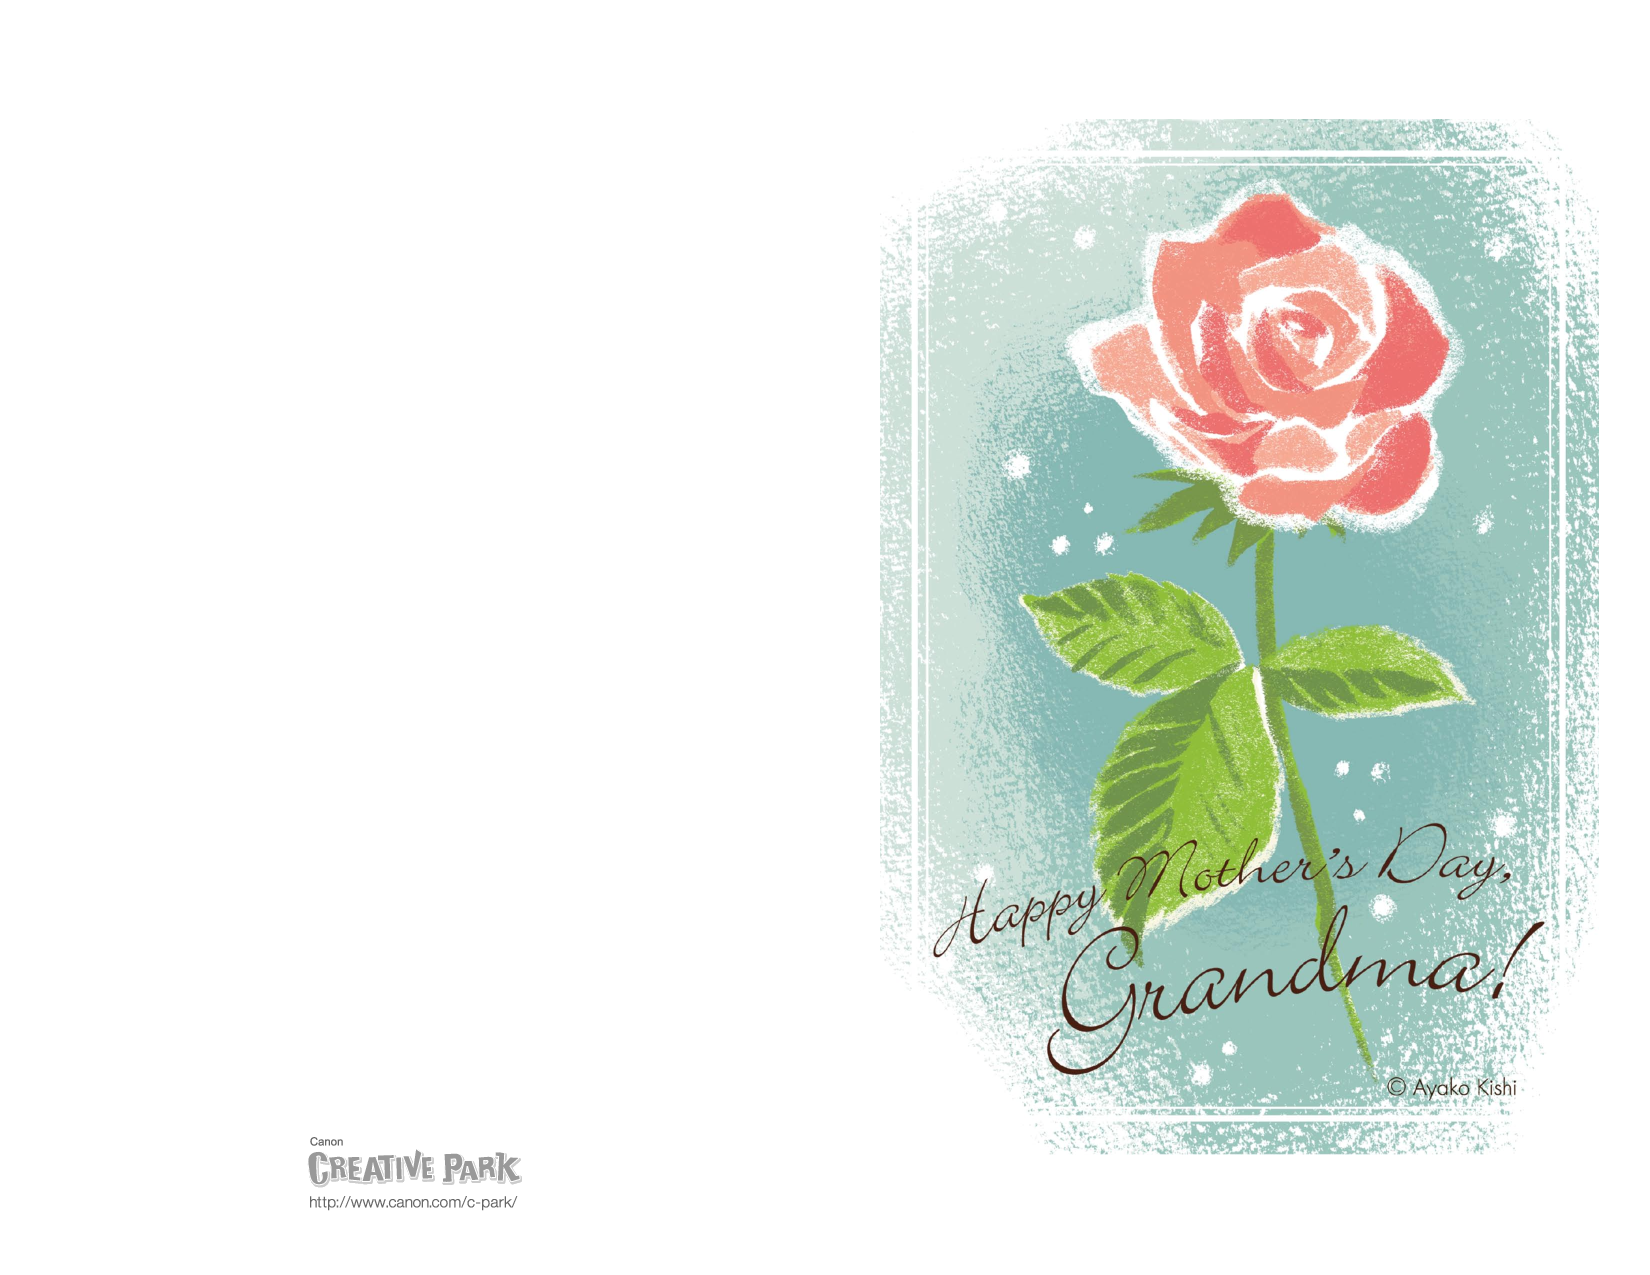 6 Images of Funny Mother's Day Grandma Cards Printable